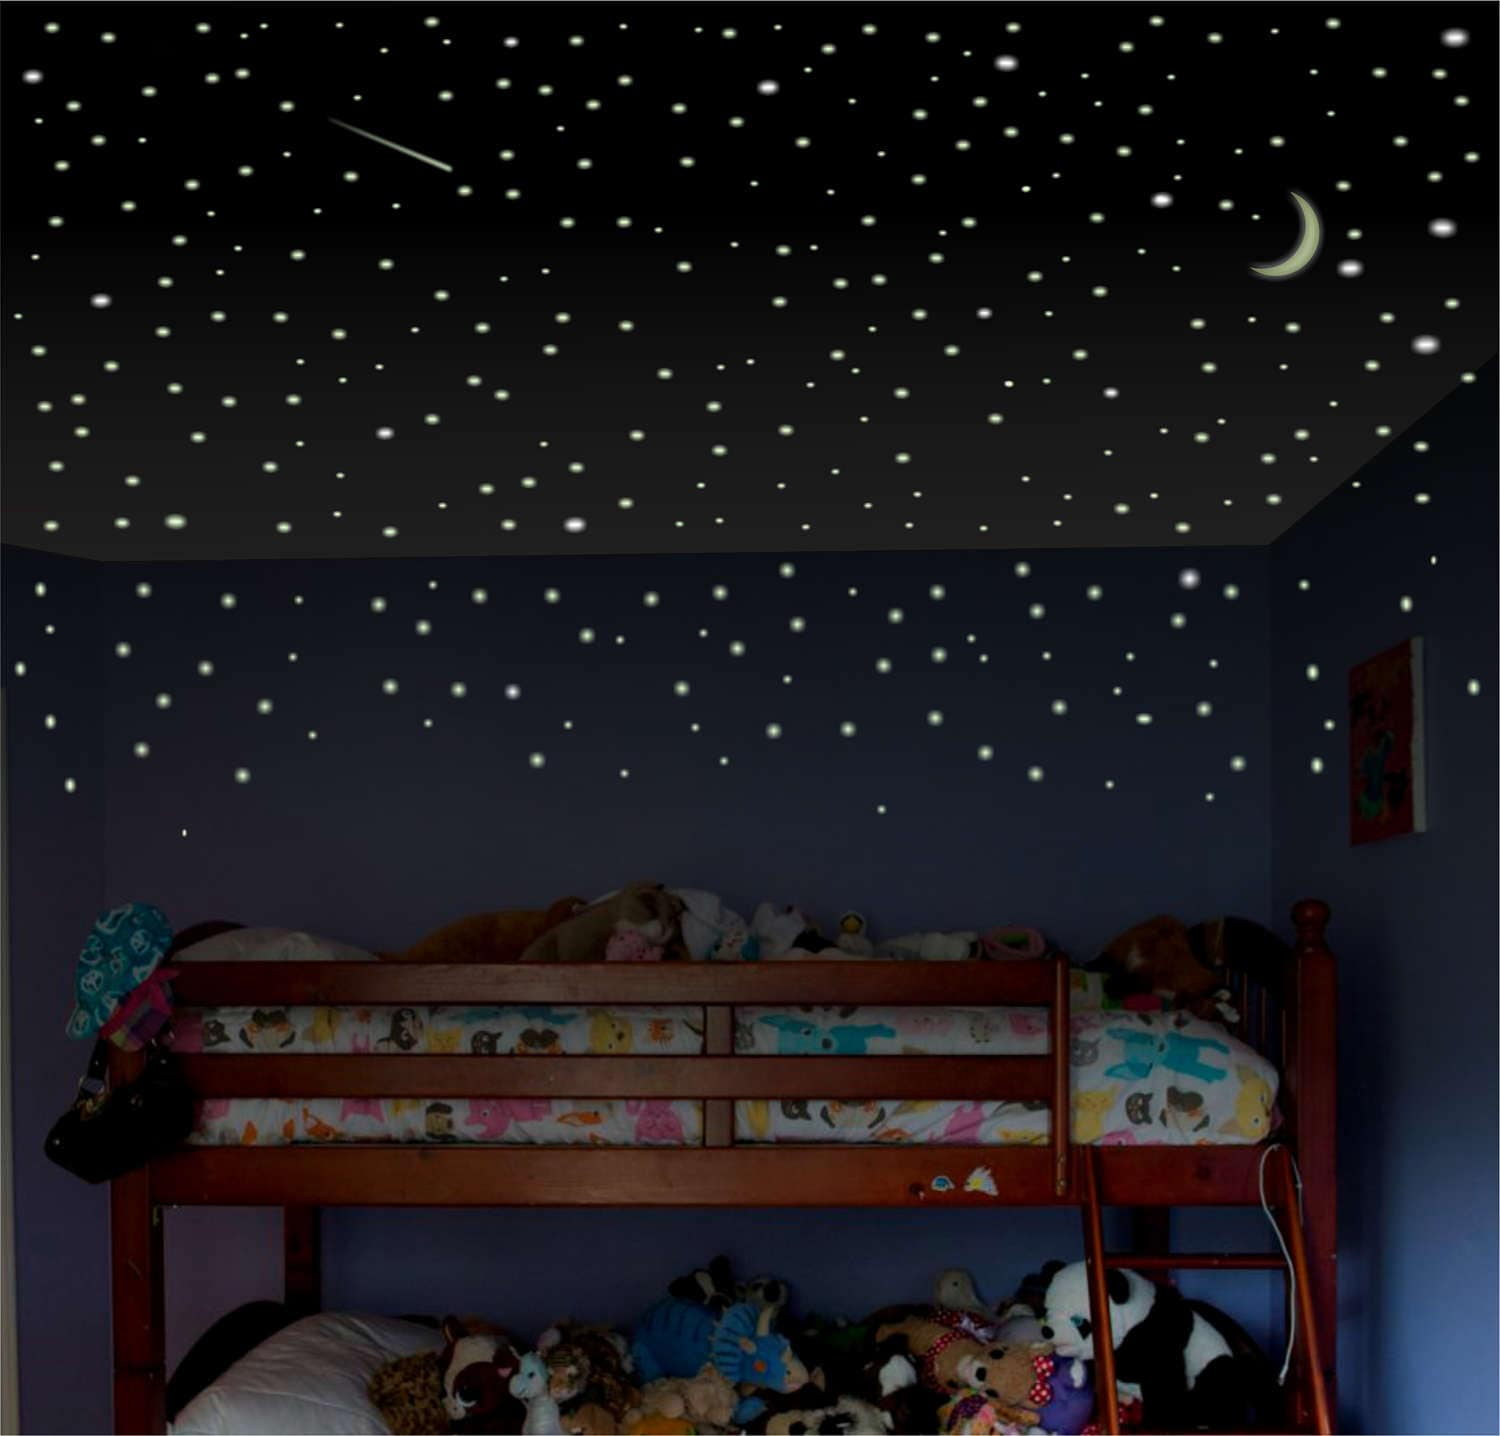 Boys room wall decal Glow Stars childrens room wall decal | Etsy